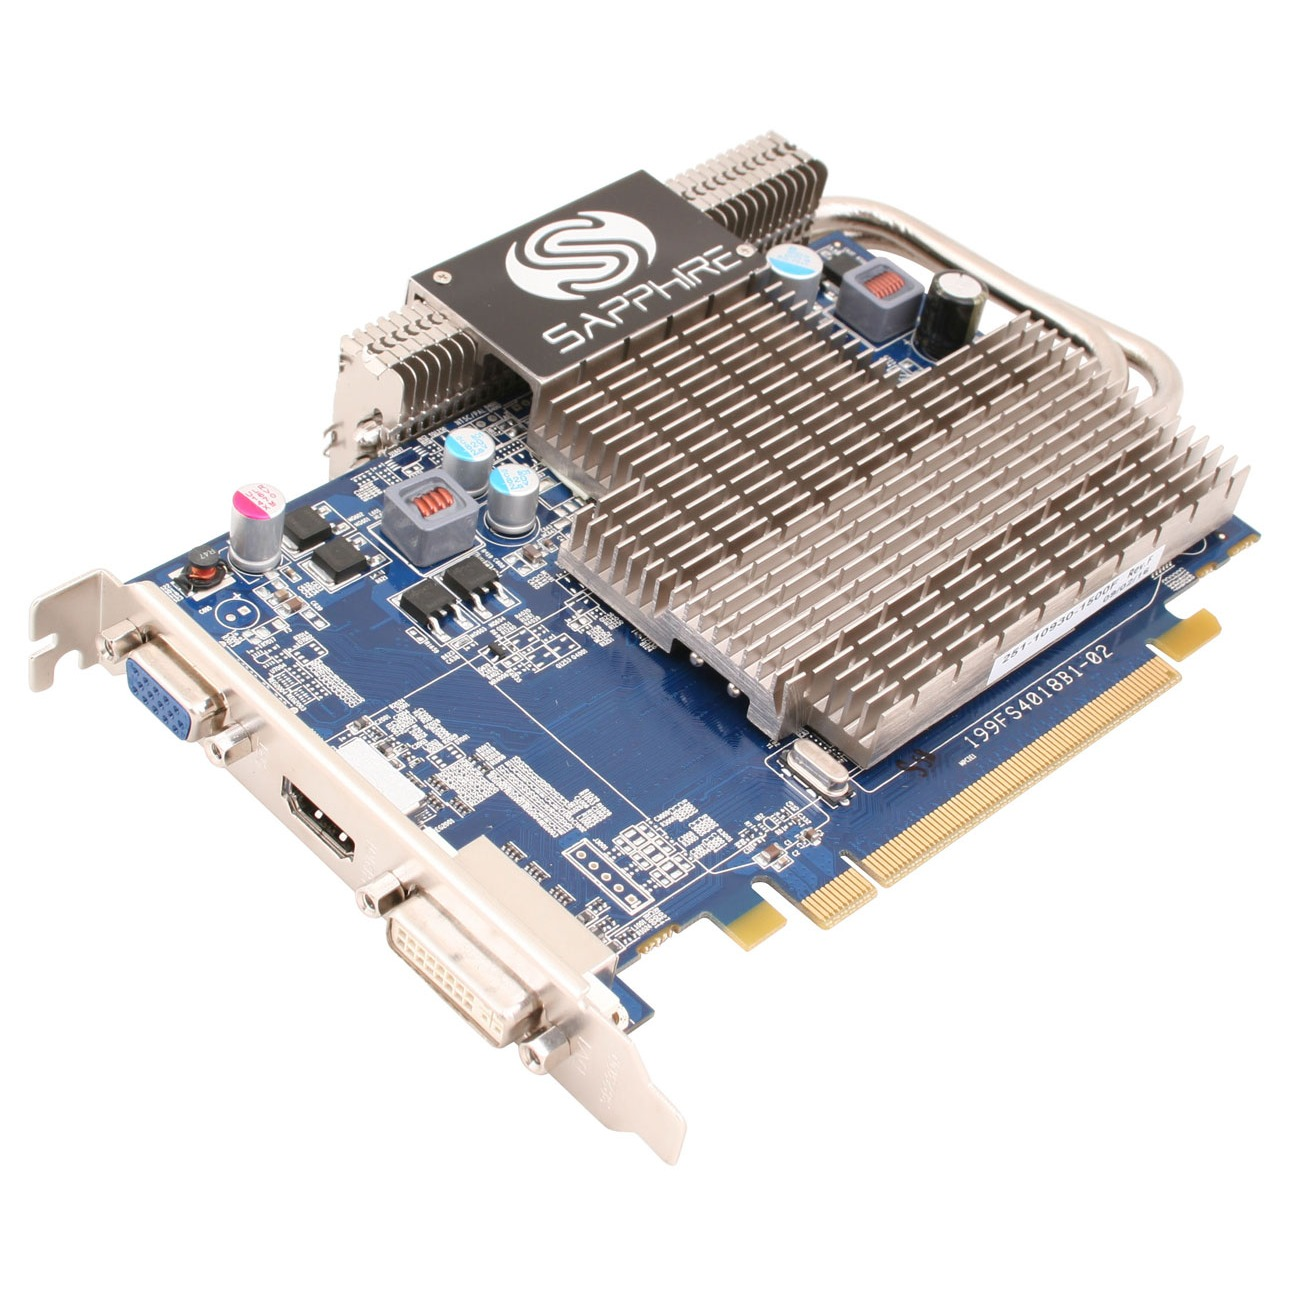 Carte graphique Sapphire Radeon HD 4650 Ultimate - 1 Go Sapphire Radeon HD 4650 Ultimate - 1 Go HDMI/DVI - PCI Express (ATI Radeon HD 4650)